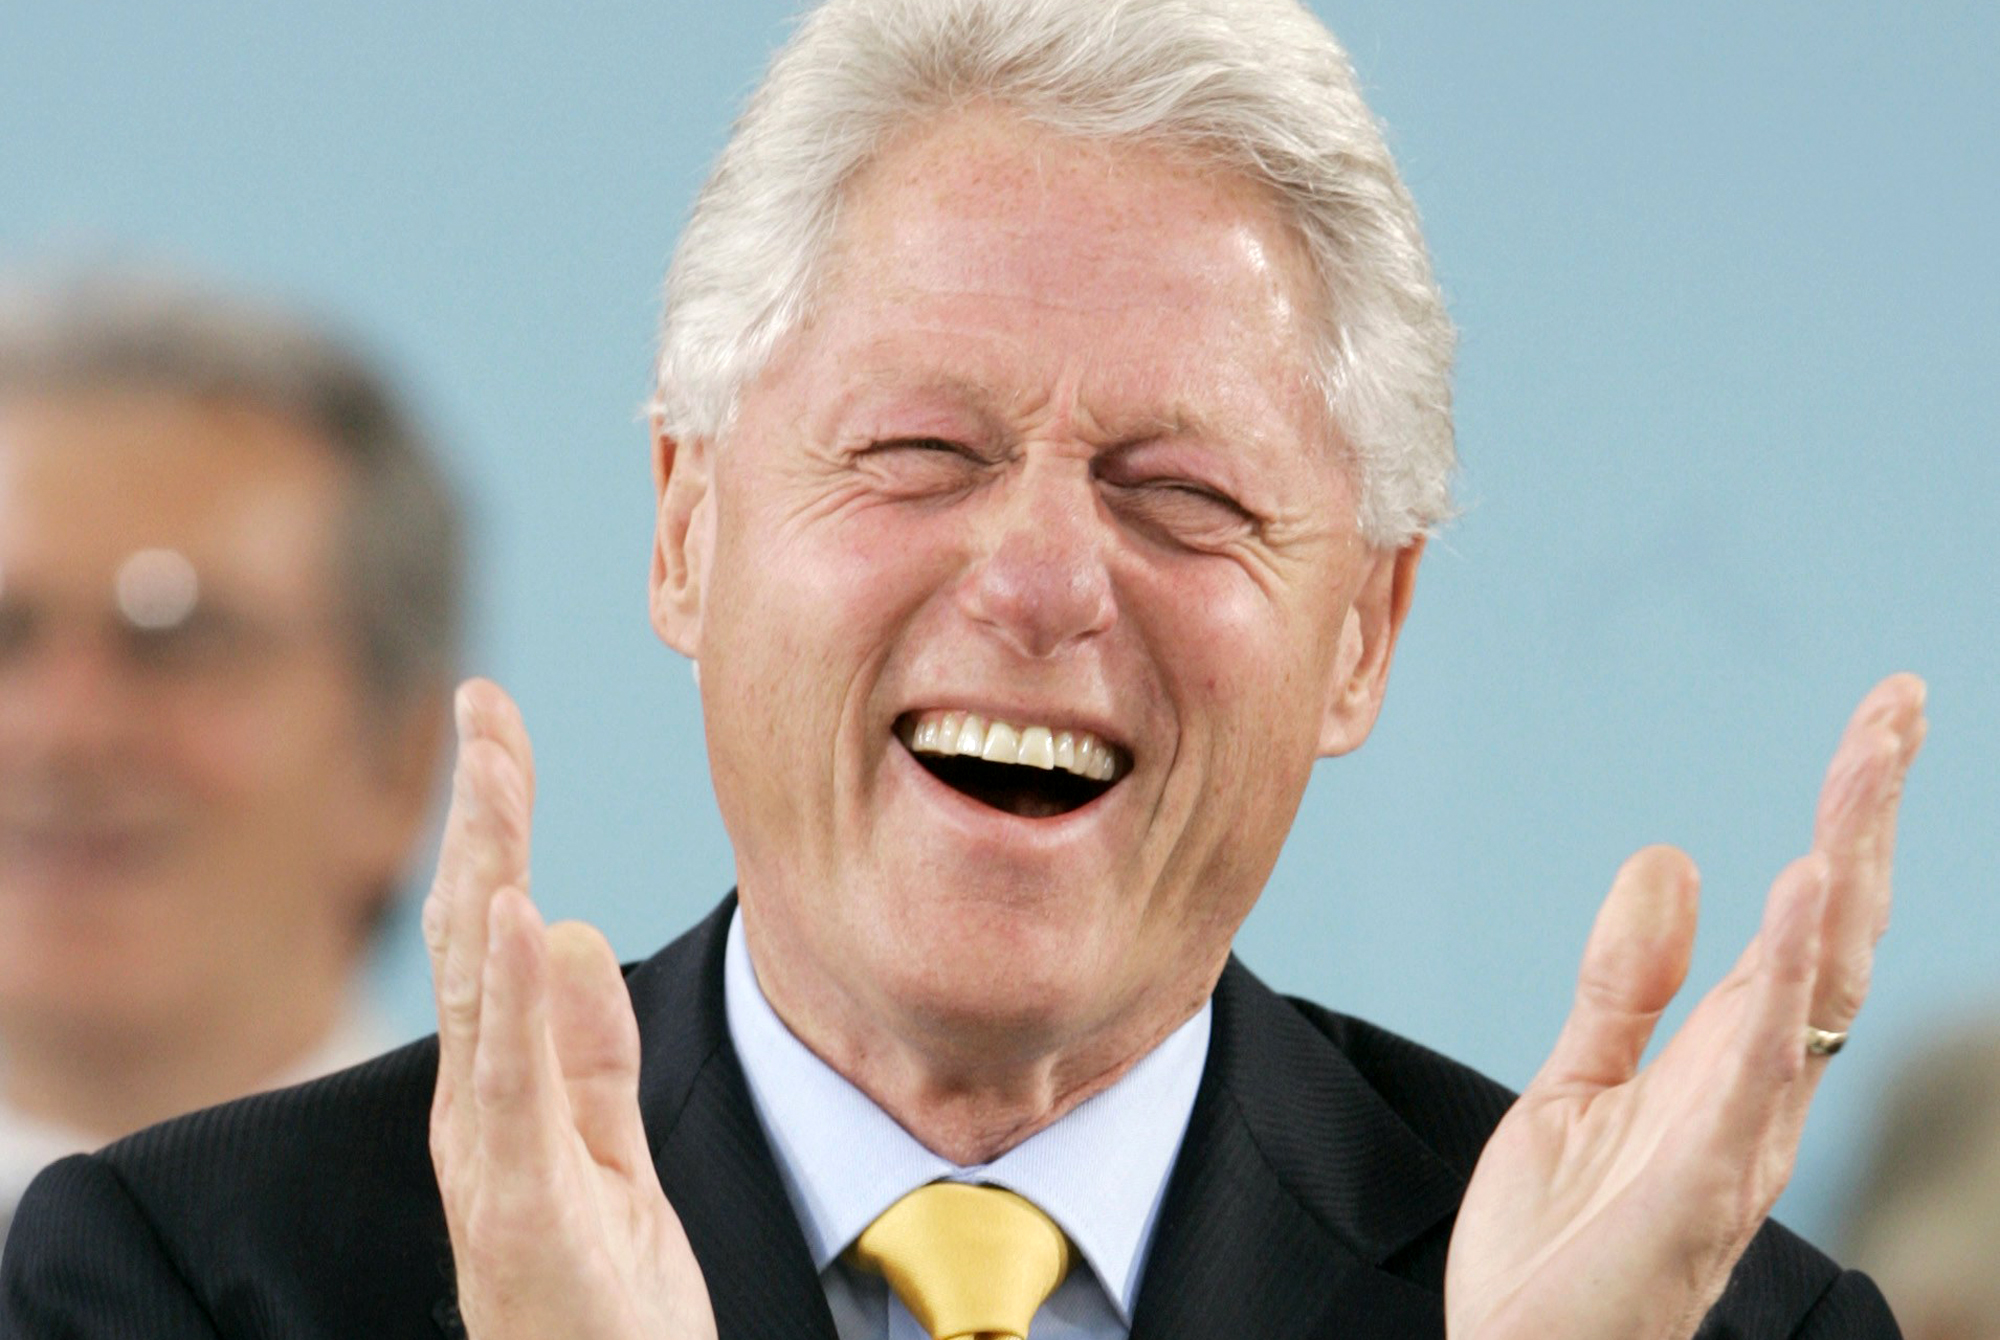 DO NOT PURGE Former U.S. President Bill Clinton laughs during the student speeches before delivering the Class Day speech to the Class of 2007 at Harvard University in Cambridge, Massachusetts June 6, 2007.   REUTERS/Brian Snyder (UNITED STATES)